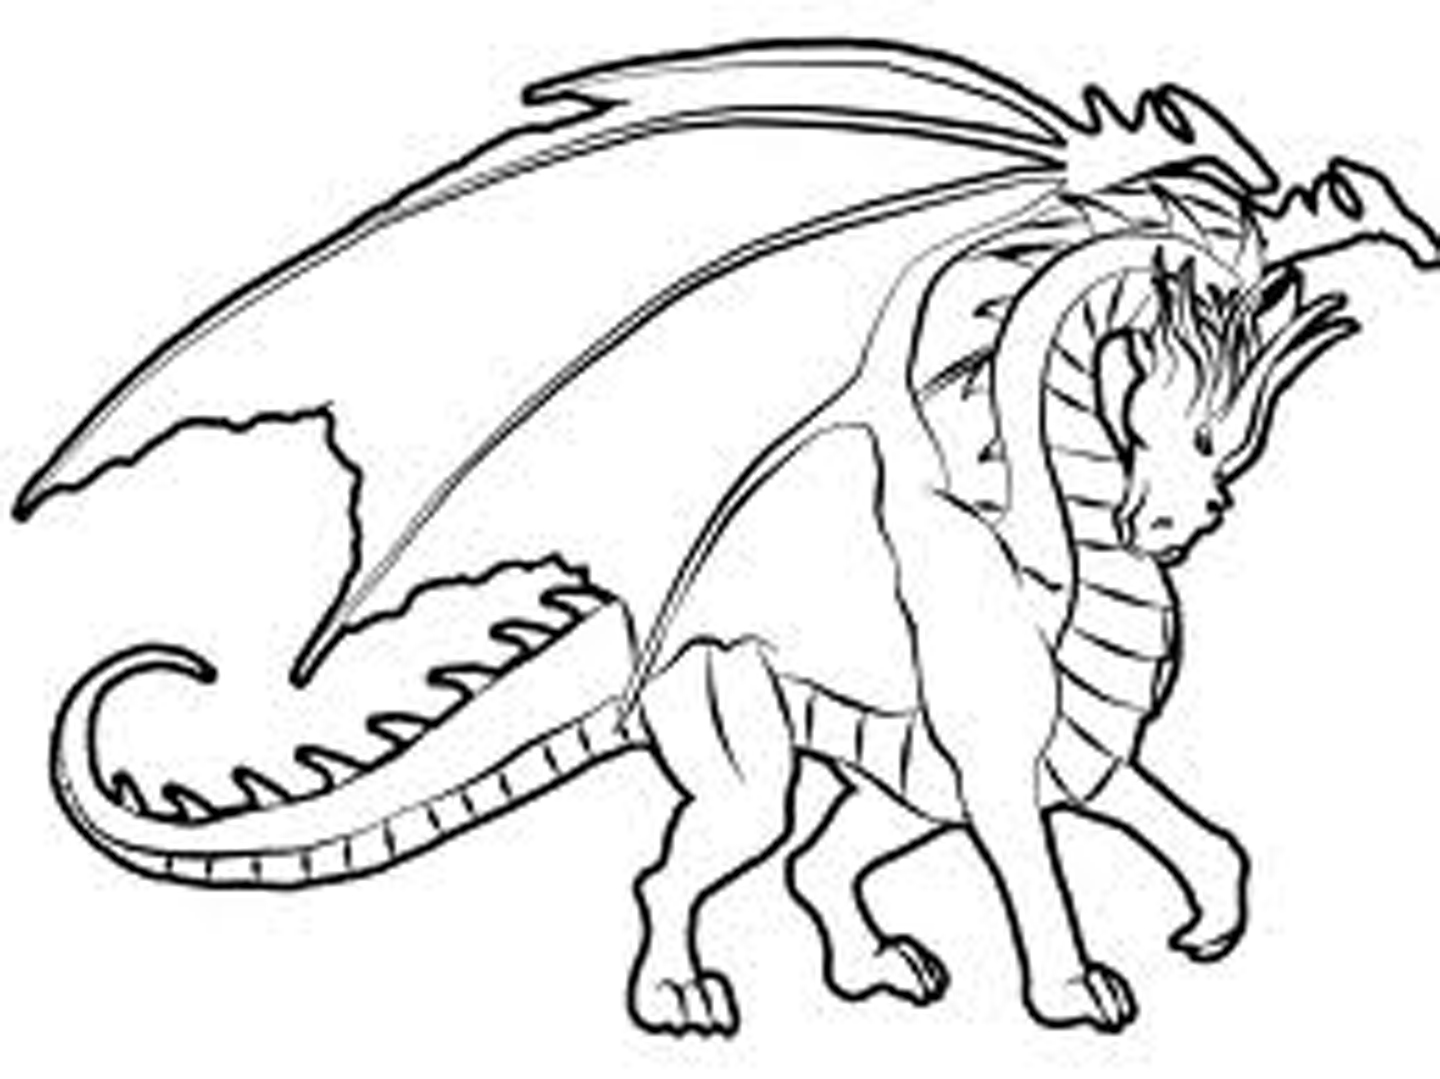 007 Witches Coloring Pages as well Ausmalbilder Drache furthermore Easy Halloween Coloring Pages also Halloween Coloring Page 1387 in addition Mauvo   wp Content uploads 2013 10 coloring Pages Halloween Coloring Pages For Girls. on scary ghost pitchers